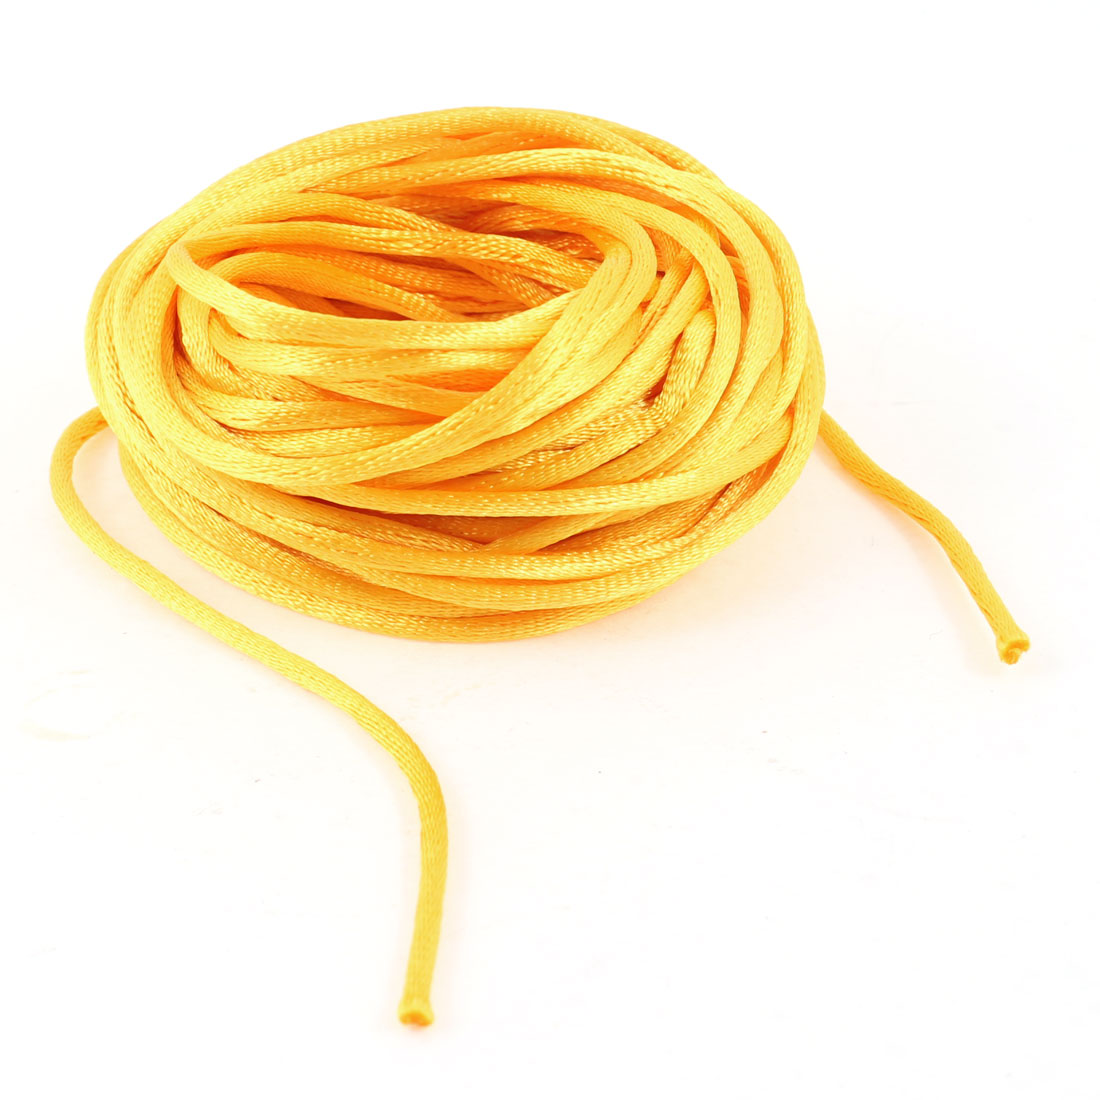 Gold Tone Braided Thread Nylon Handwork Chinese Knot Rat Tail Cord 8.2M